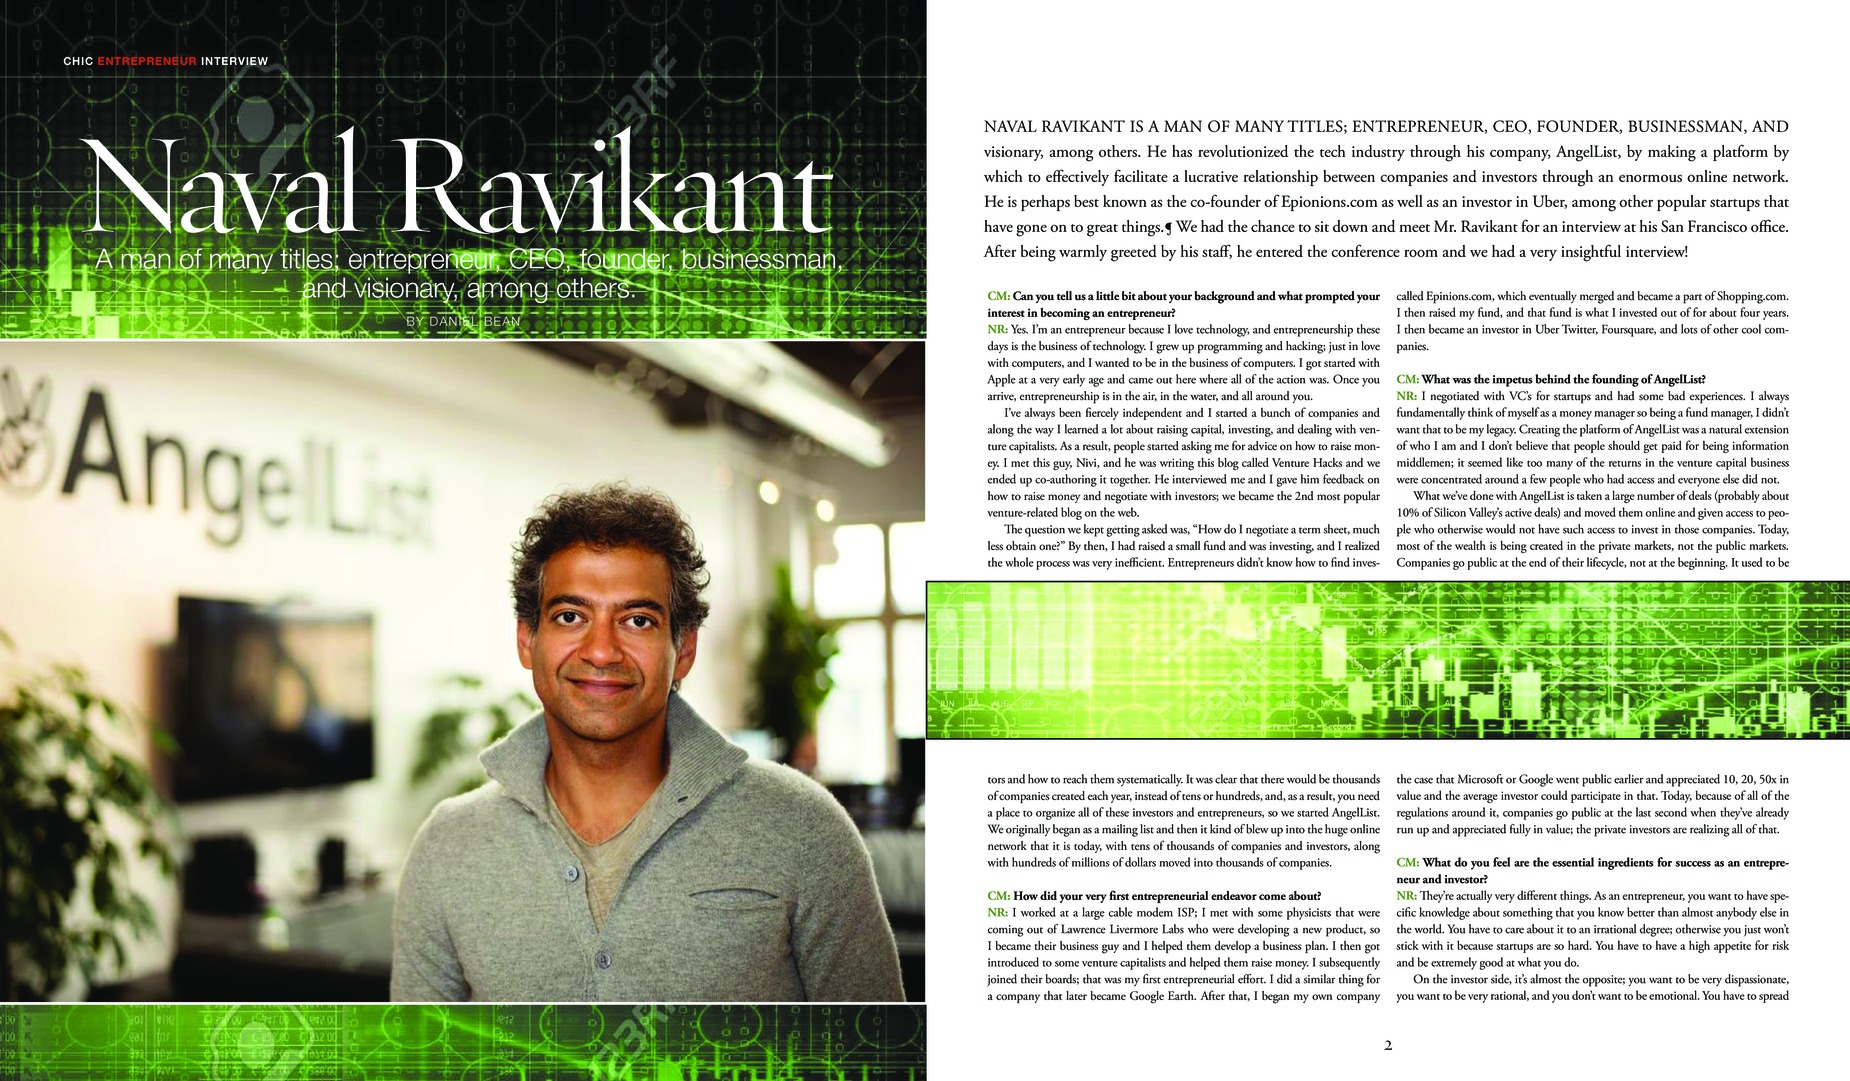 Naval Ravikant Interview